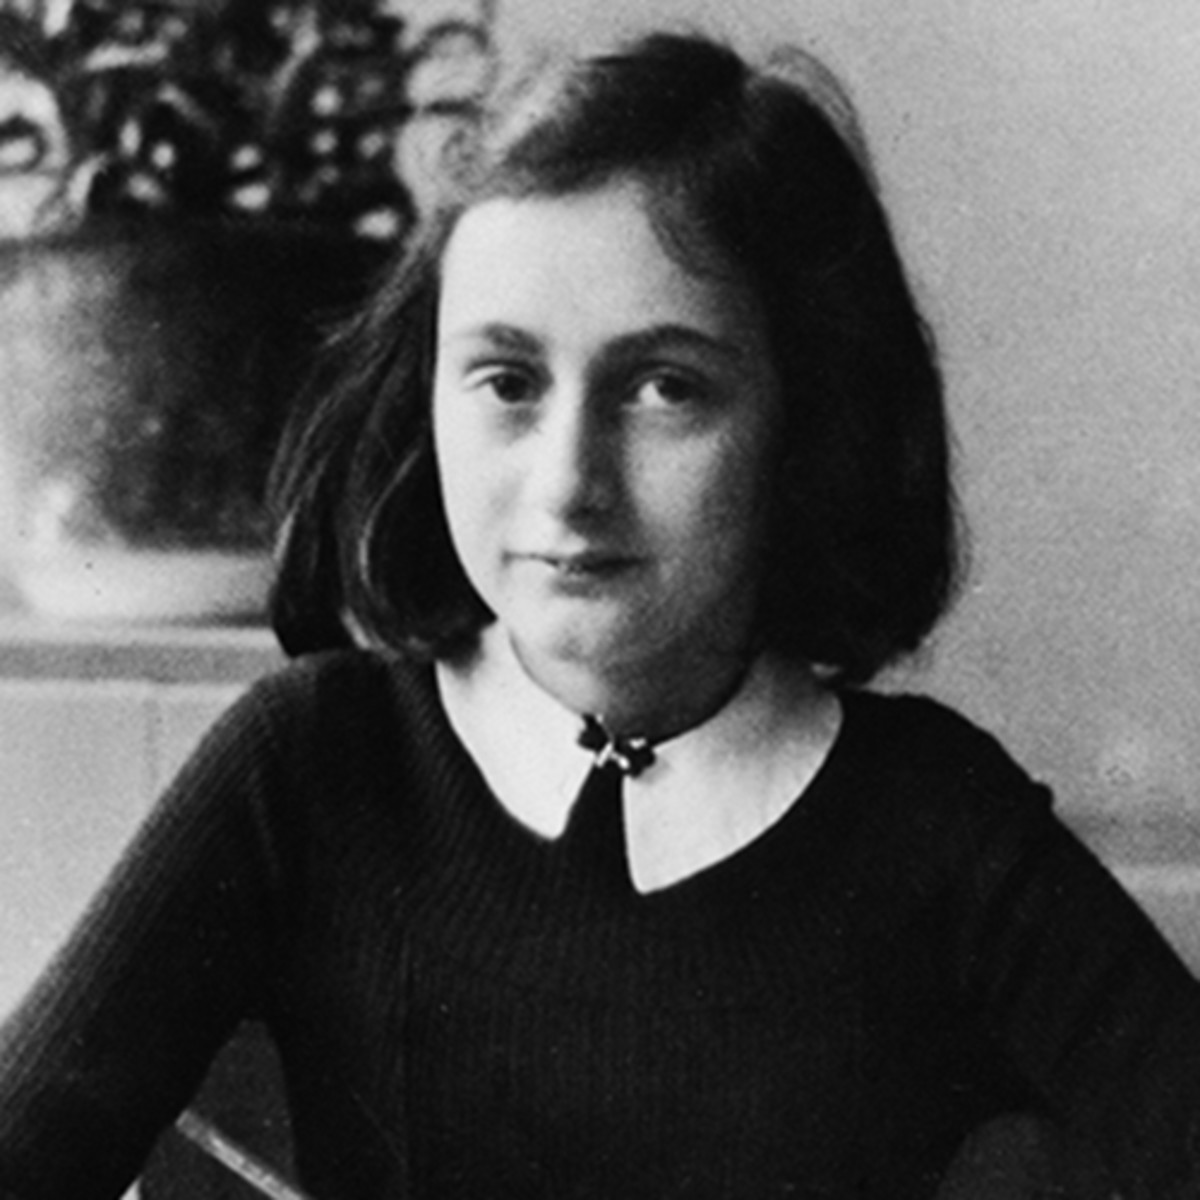 Anne Frank - Diary, Quotes & Family - Biography